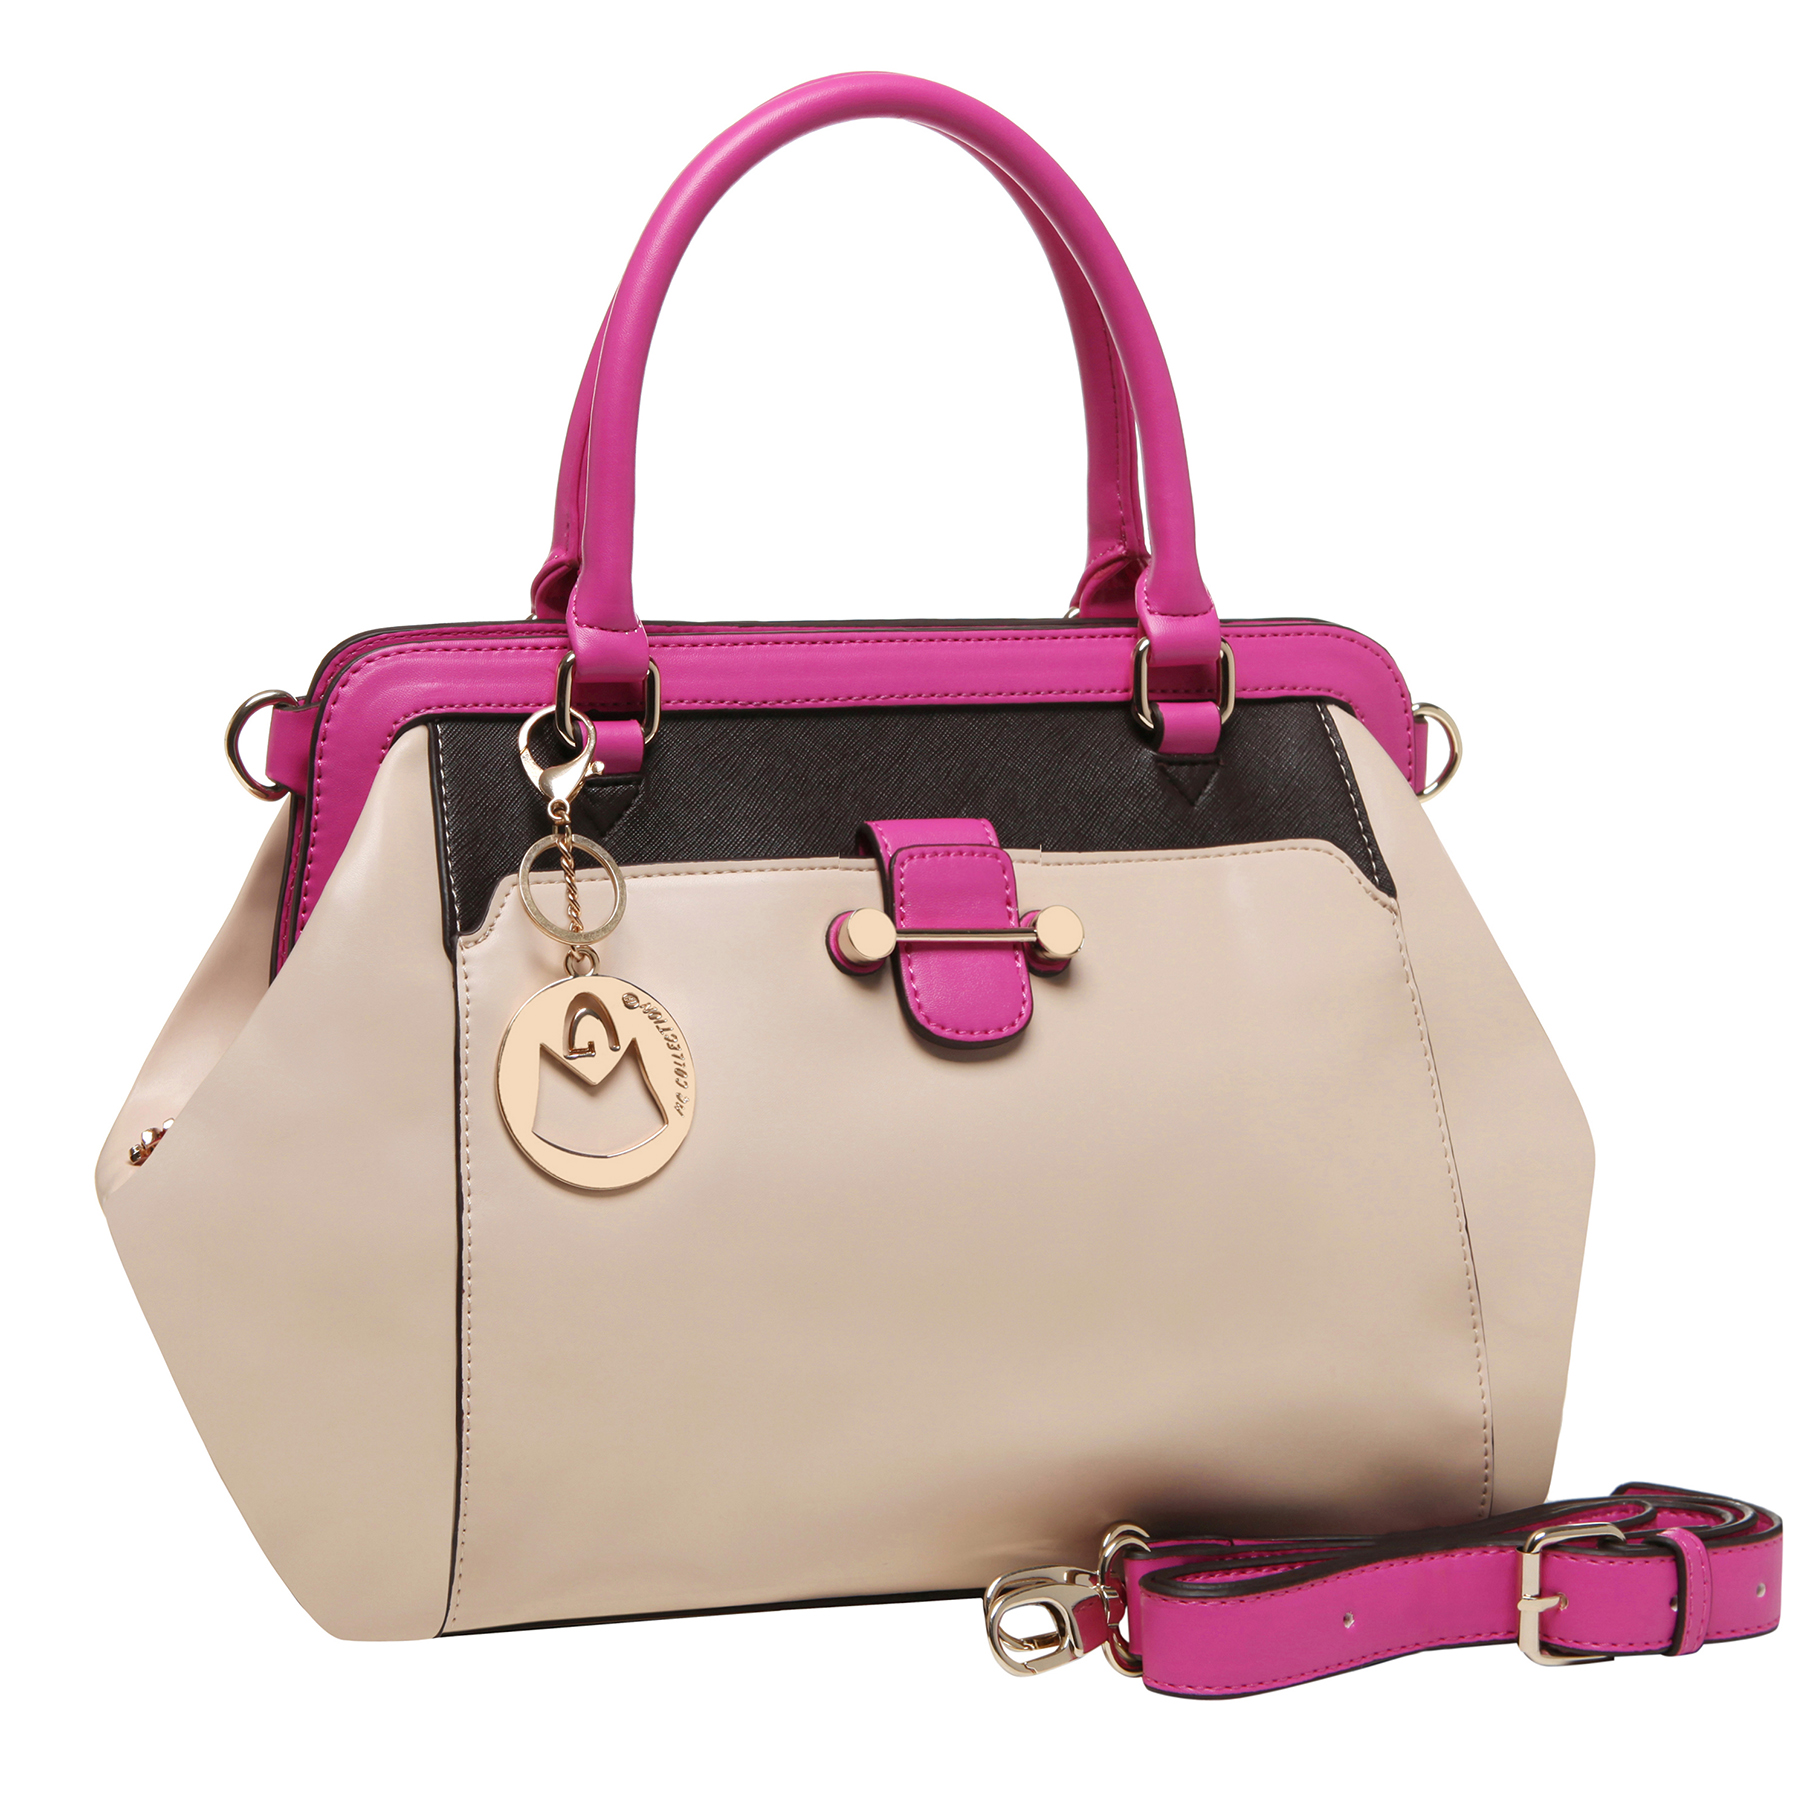 mg-collection-kaely-top-handle-tote-tb-h0603bei-1.jpg